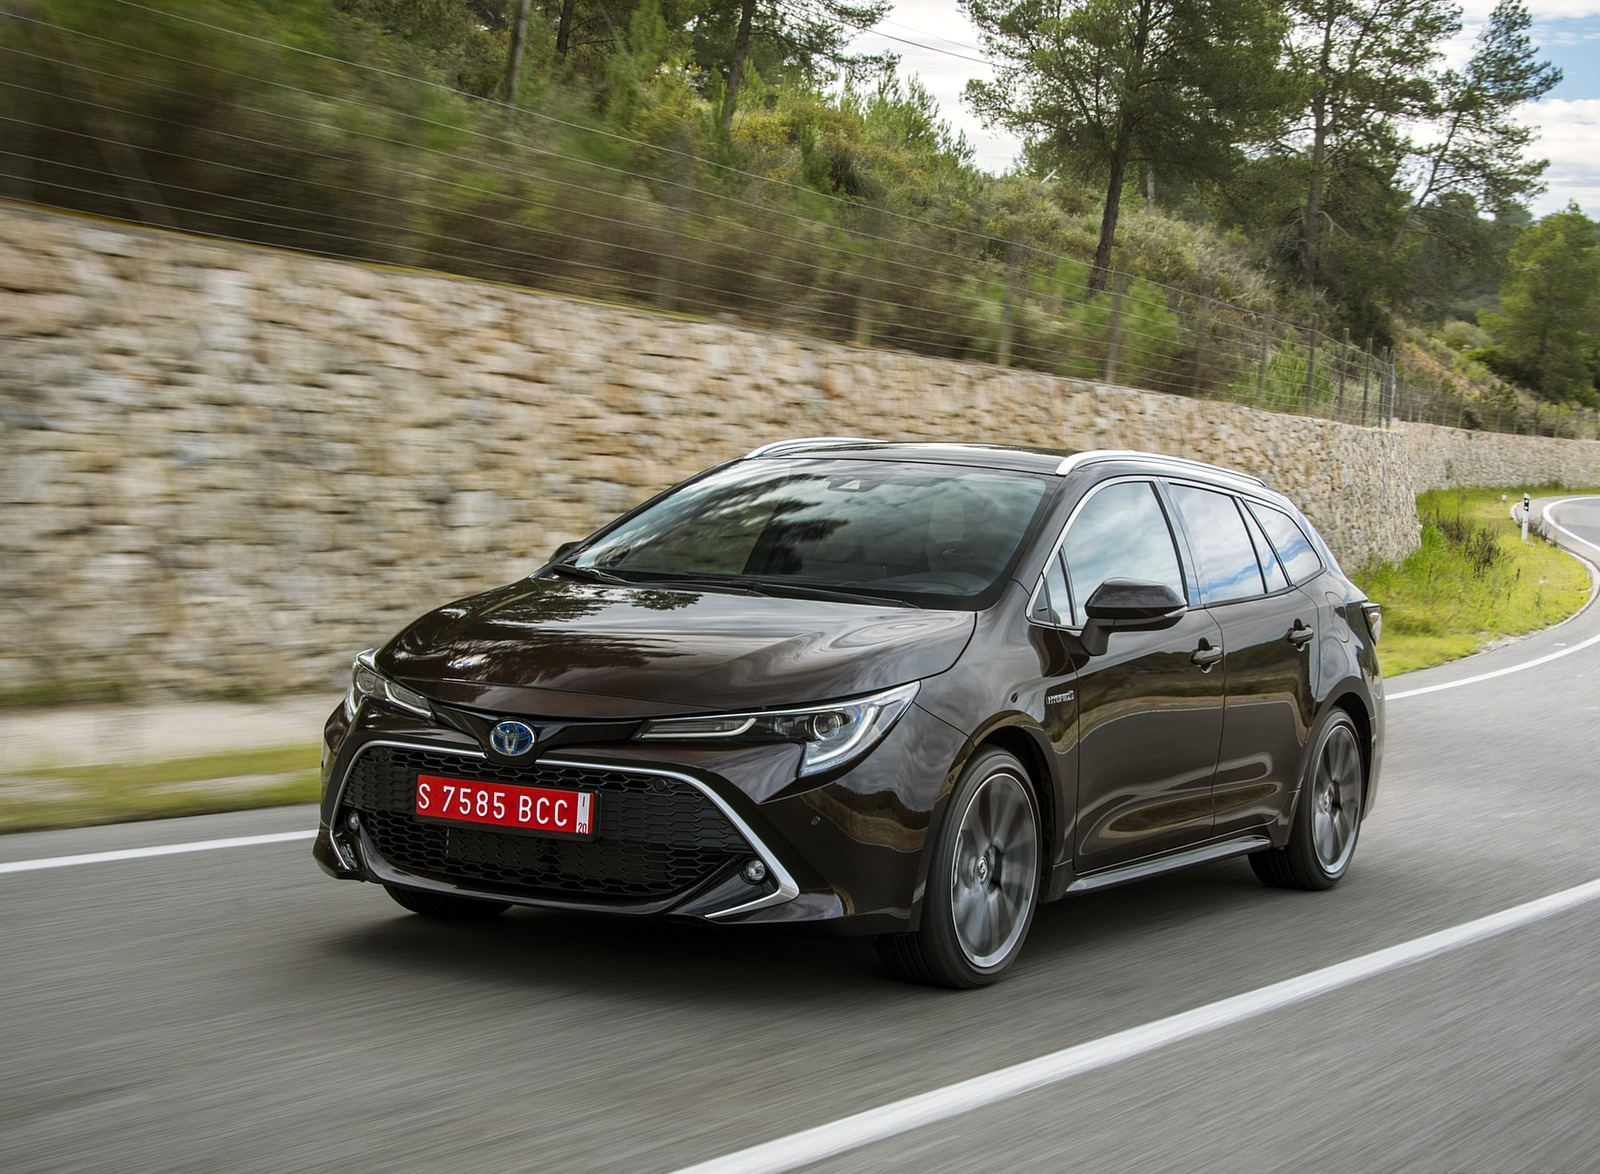 2019 Toyota Corolla Touring Sports 2.0L Brown (EU-Spec) Front Three-Quarter Wallpapers (7)